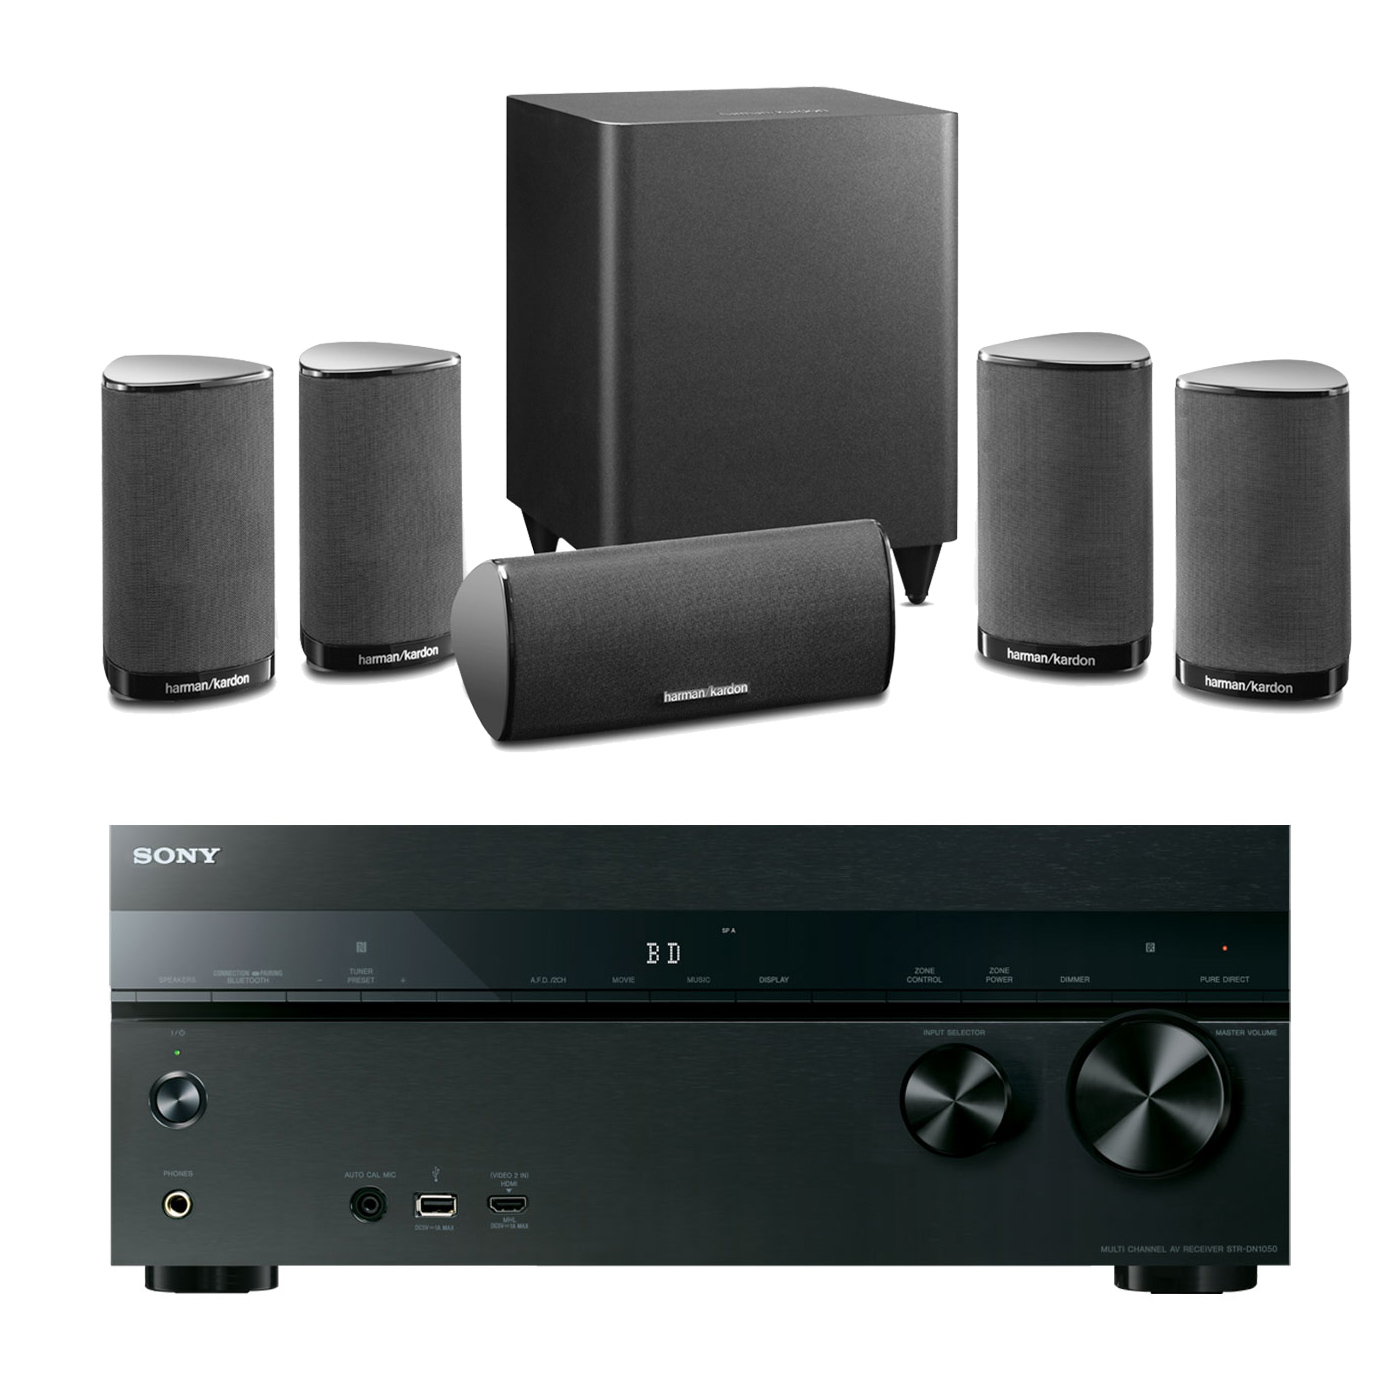 Sony str dn1050 harman kardon hkts 5 noir ensemble - Meuble pour ampli home cinema ...